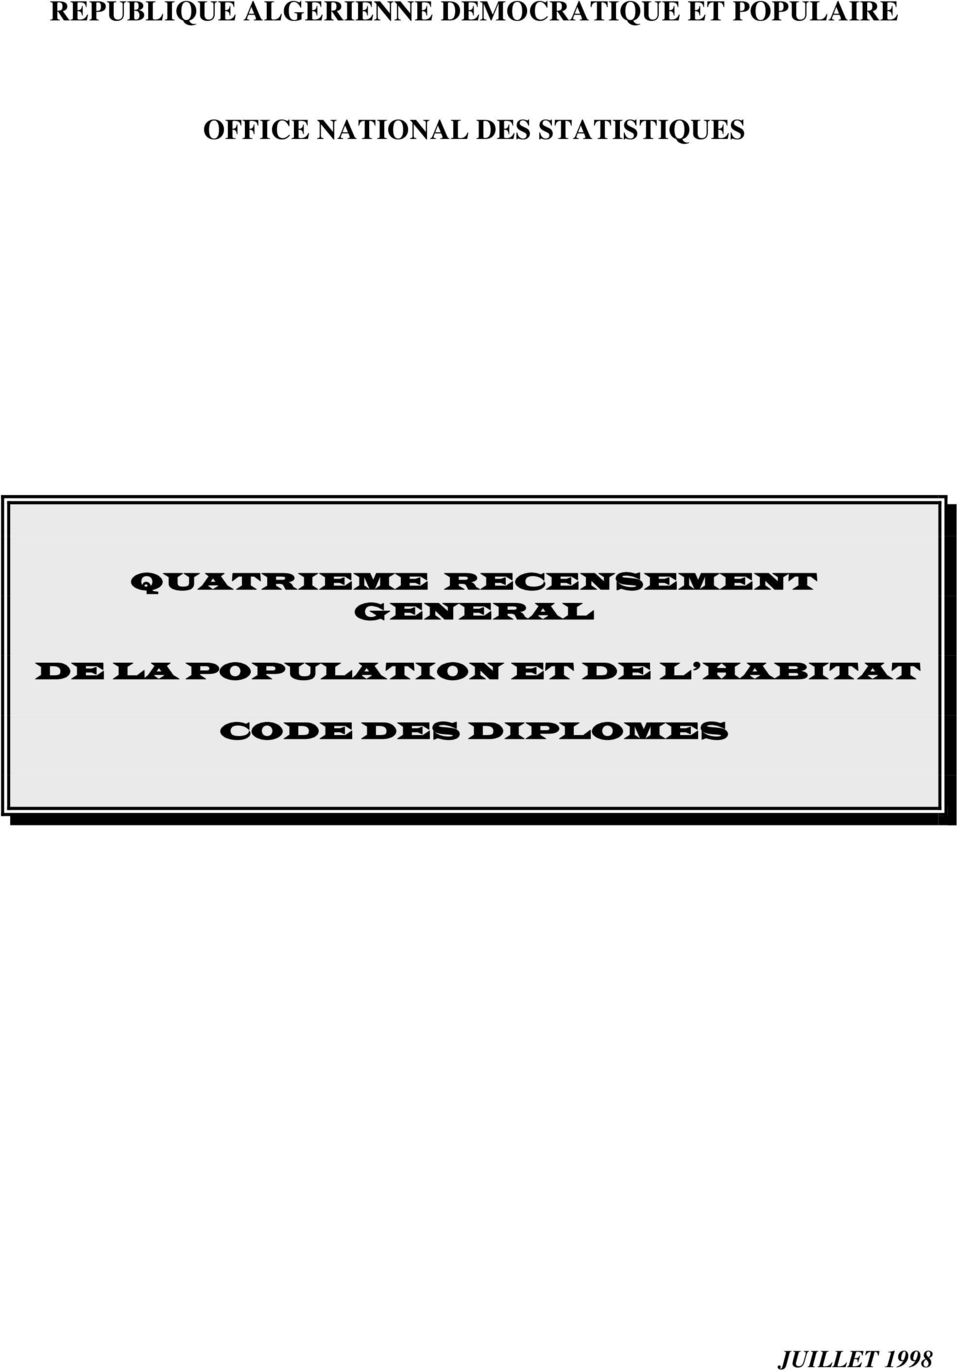 QUATRIEME RECENSEMENT GENERAL DE LA